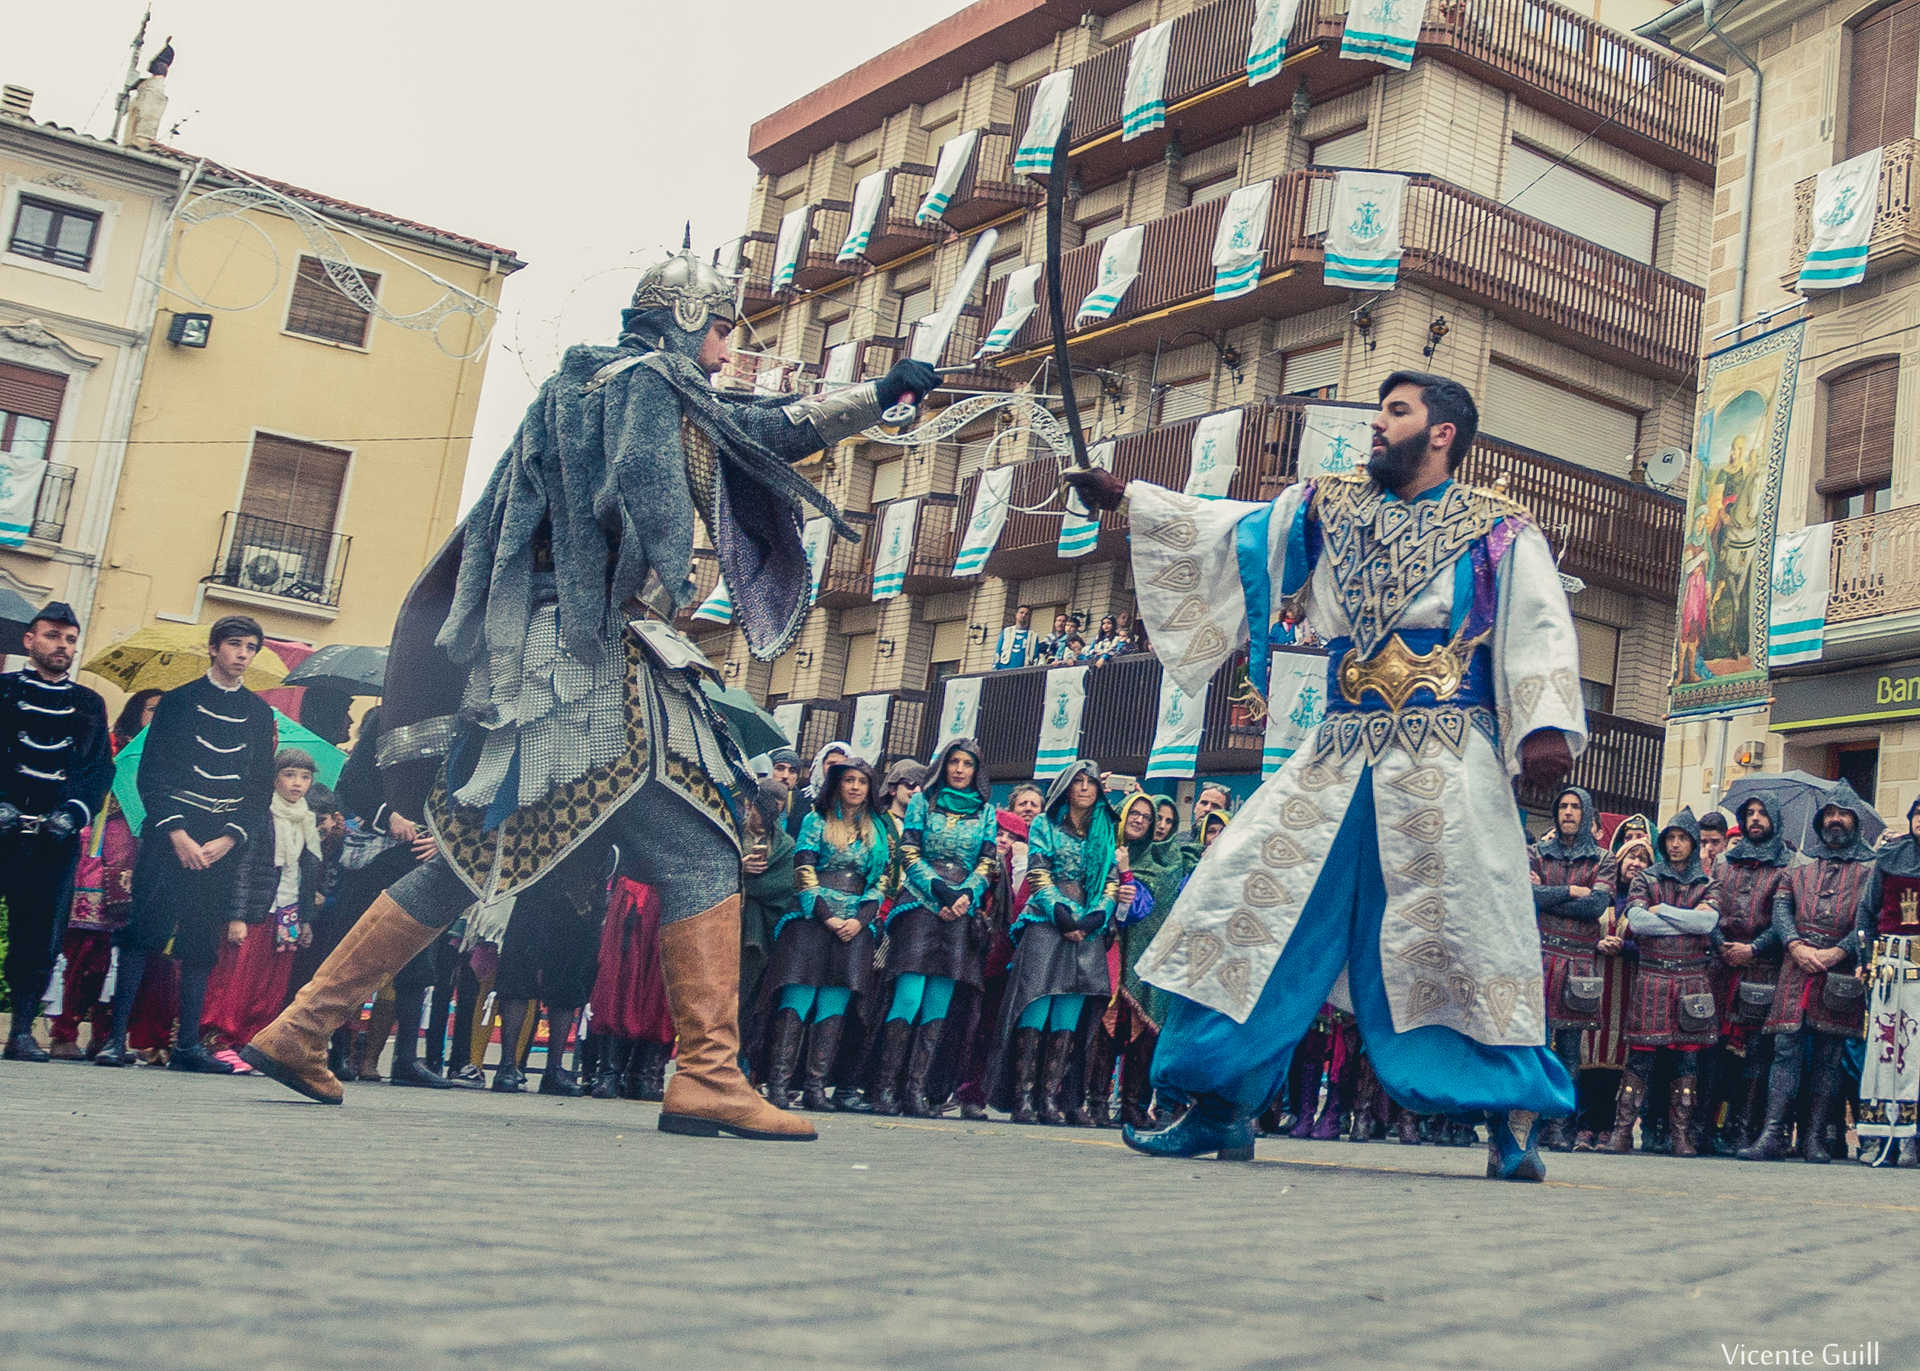 MOORS AND CHRISTIANS FESTIVITIES IN HONOUR OF VIRGEN DE LA SALUD